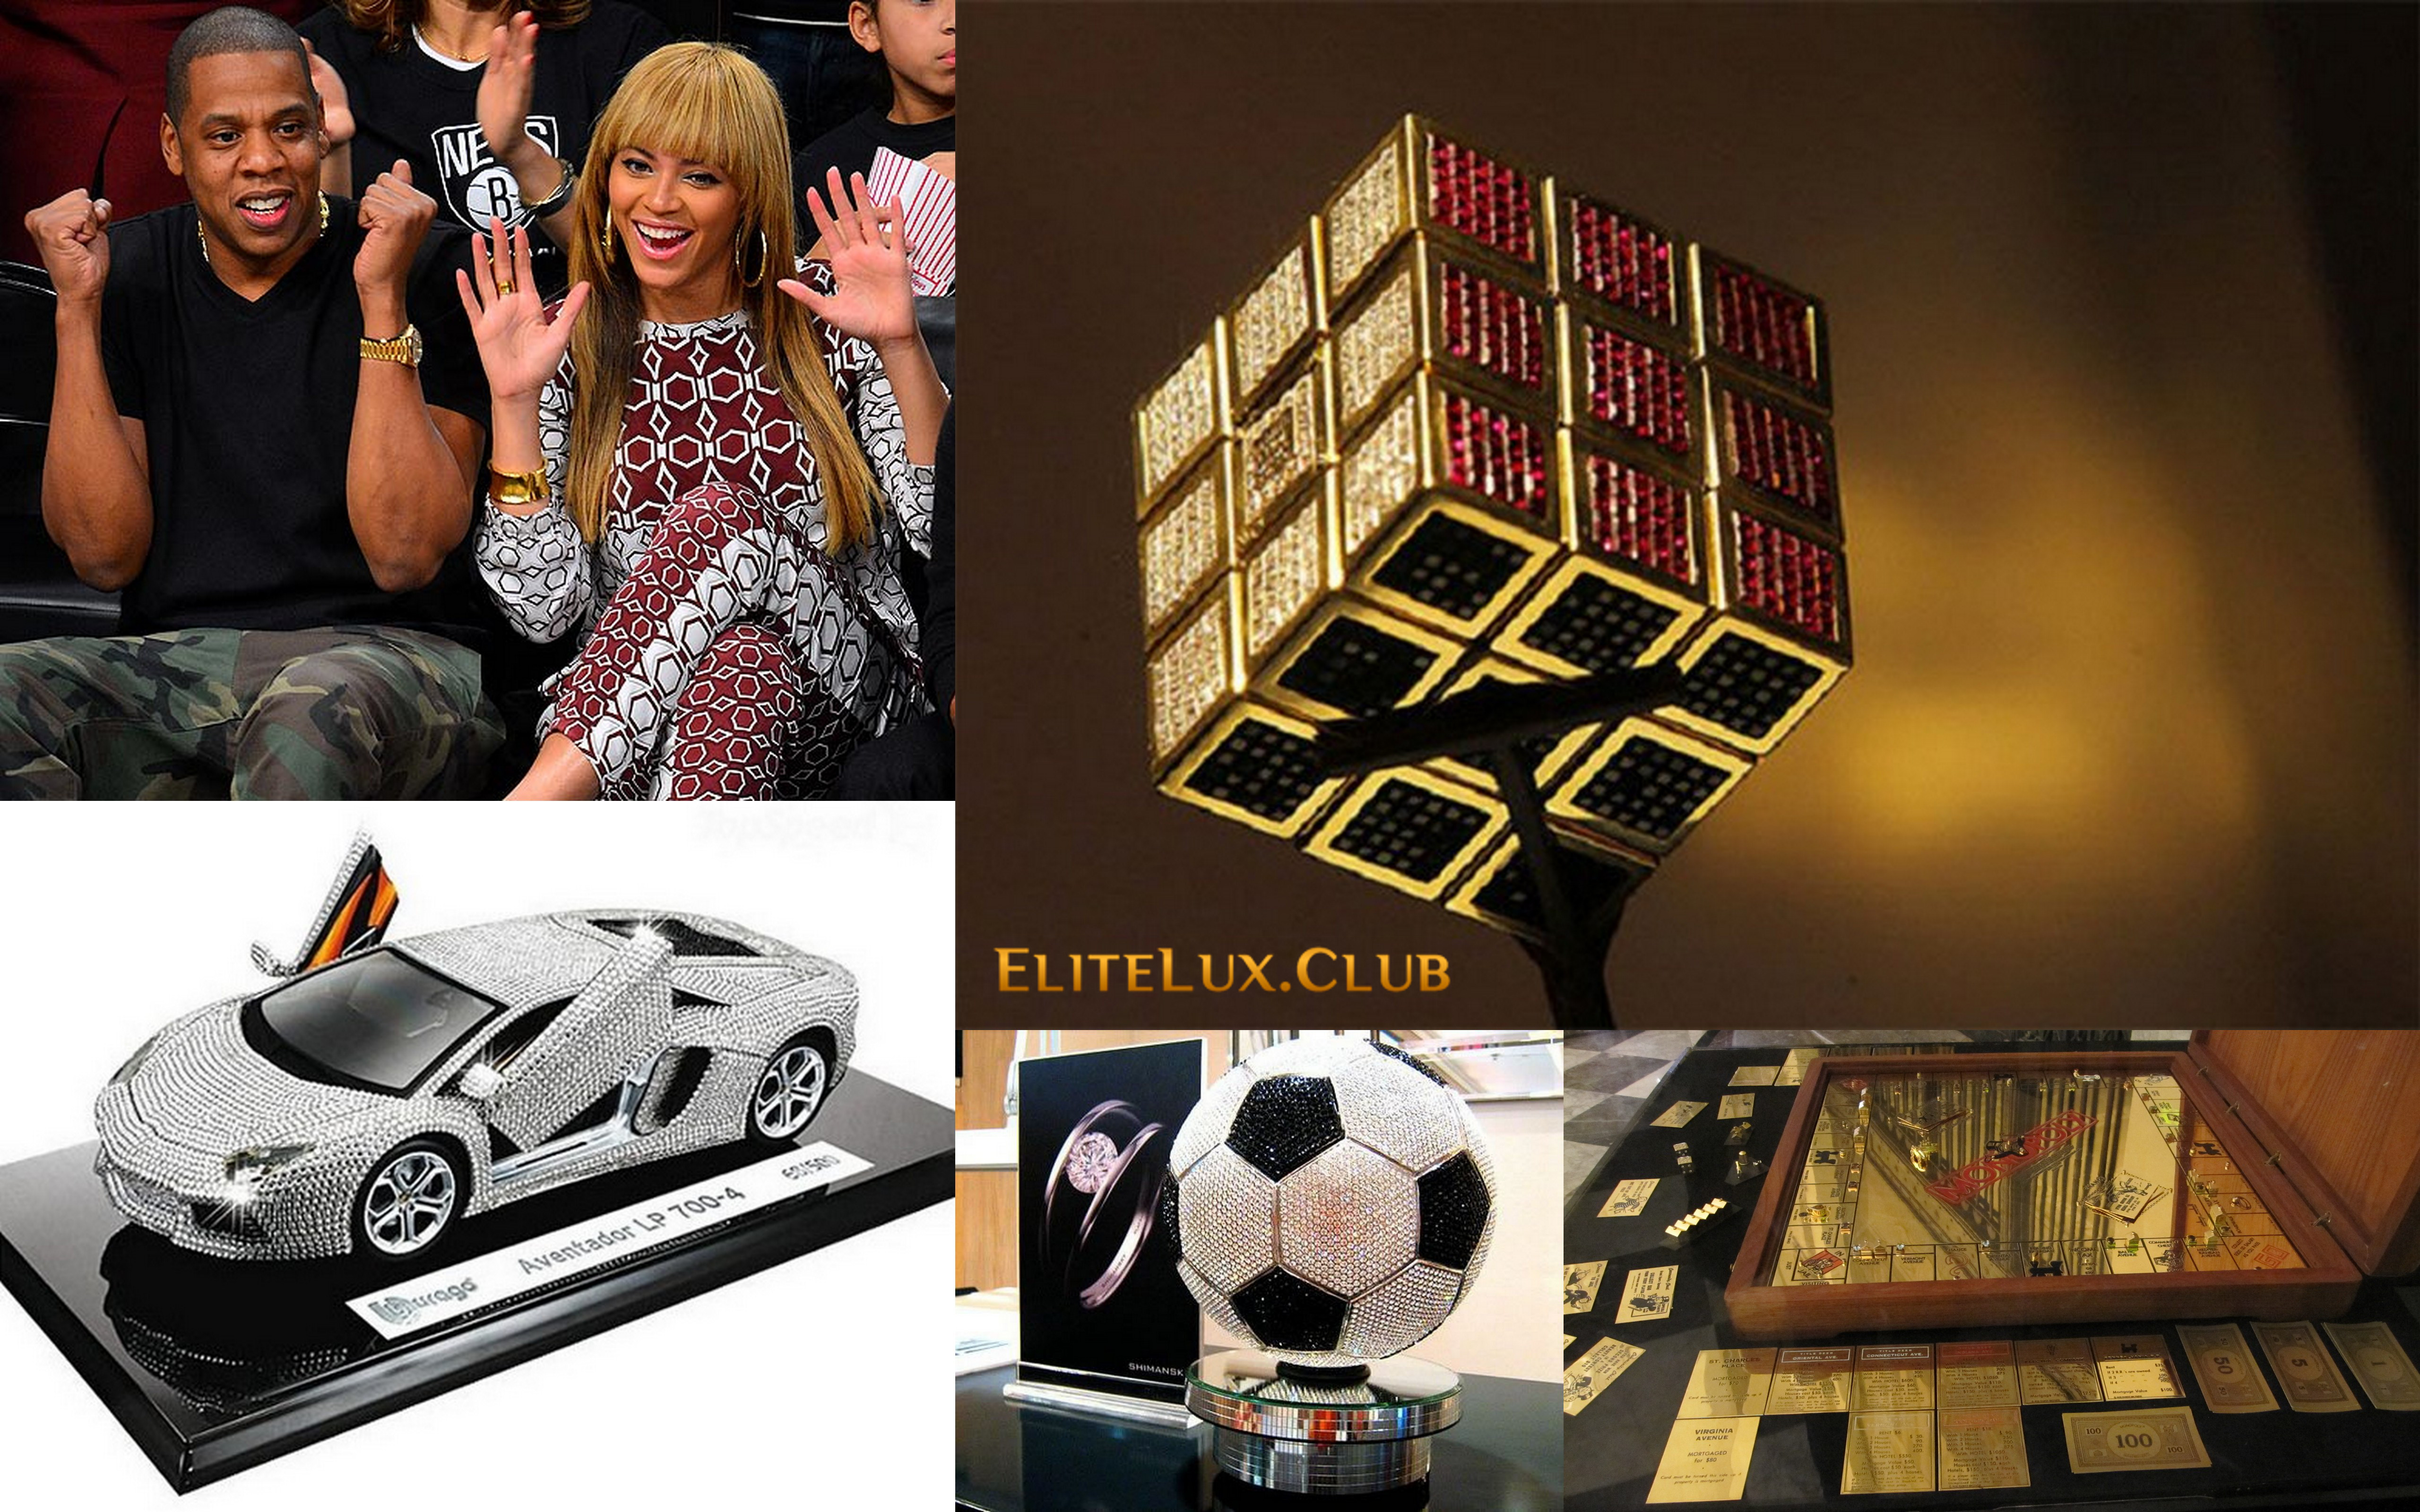 TOP 10 Most Expensive Toys Nowadays That Will Definitely Blow Your Mind For Sure (worth millions)